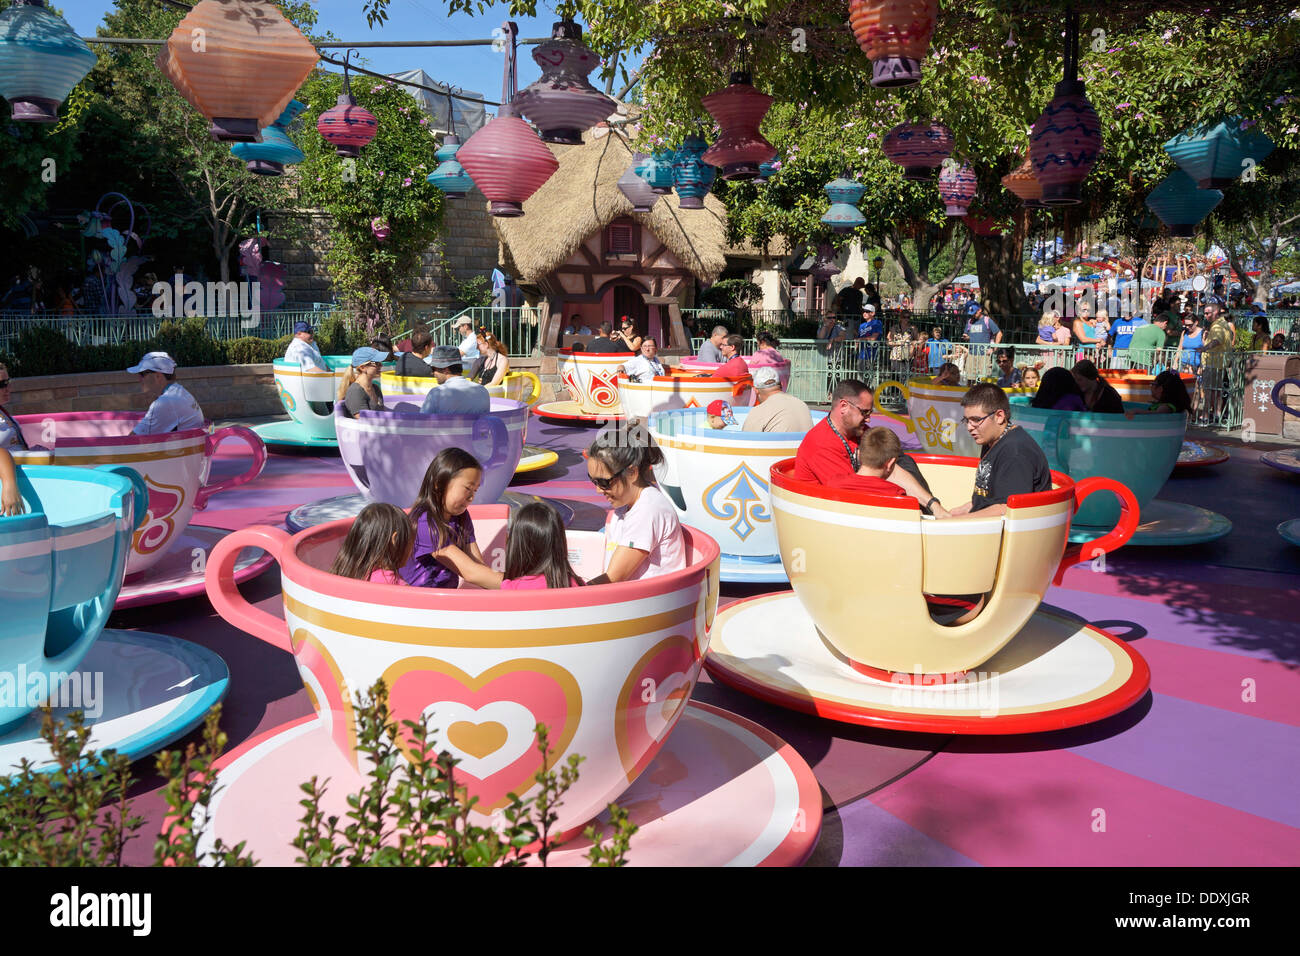 disneyland mad tea party teacup rides alice in wonderland anaheim stock photo 60206967 alamy. Black Bedroom Furniture Sets. Home Design Ideas